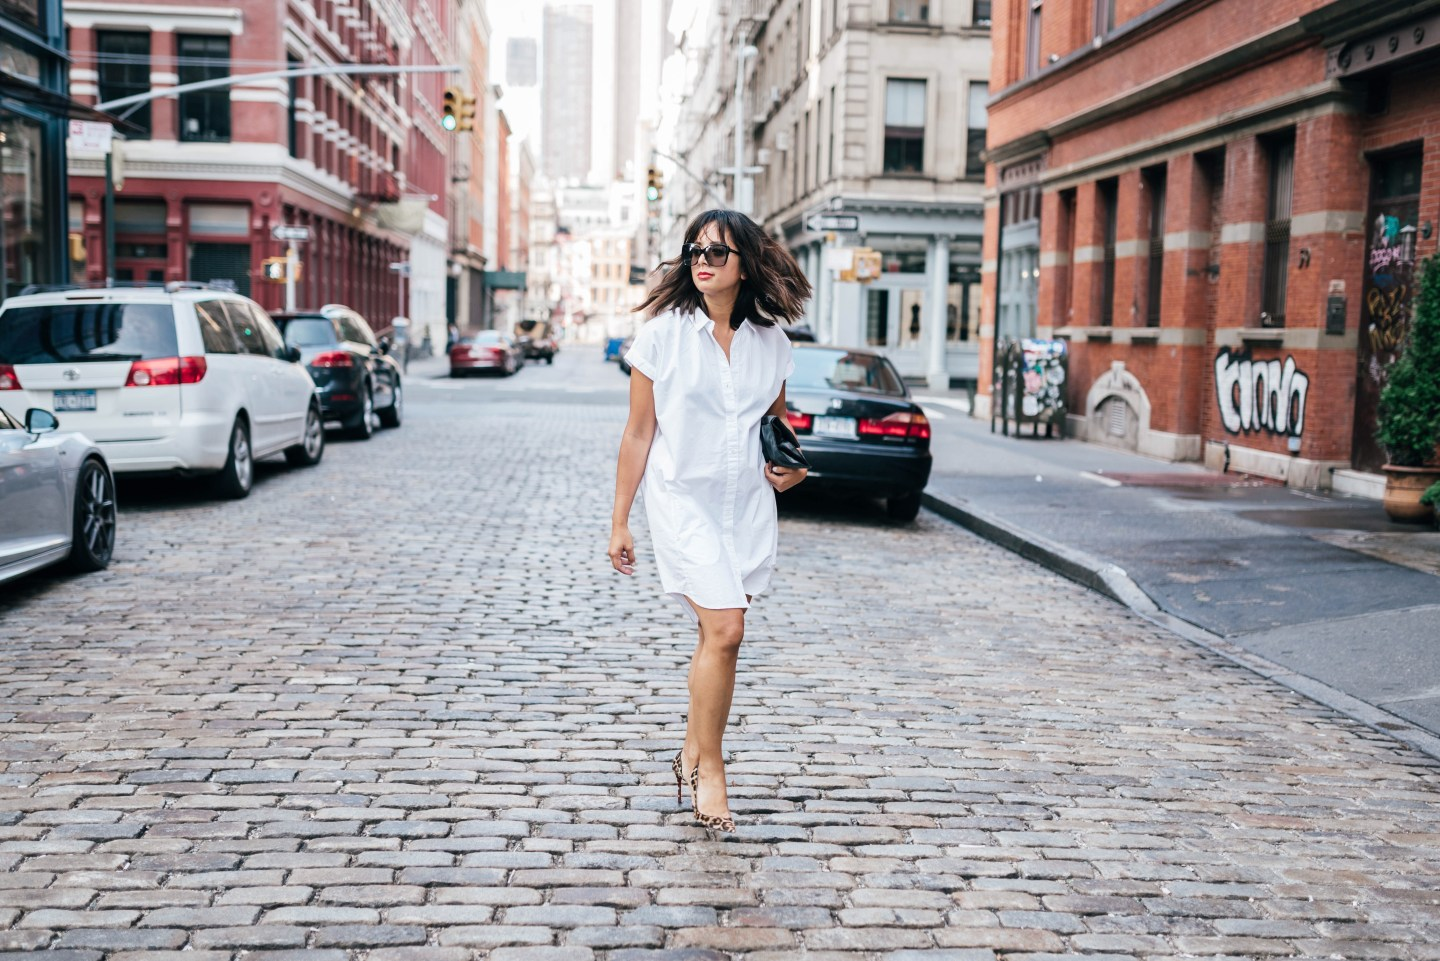 SHOP: 72 WHITE SHIRT DRESSES FOR WORK & MORE | Dresses for before and after Labor Day featured by popular San Francisco style blogger Sylvie In The Sky